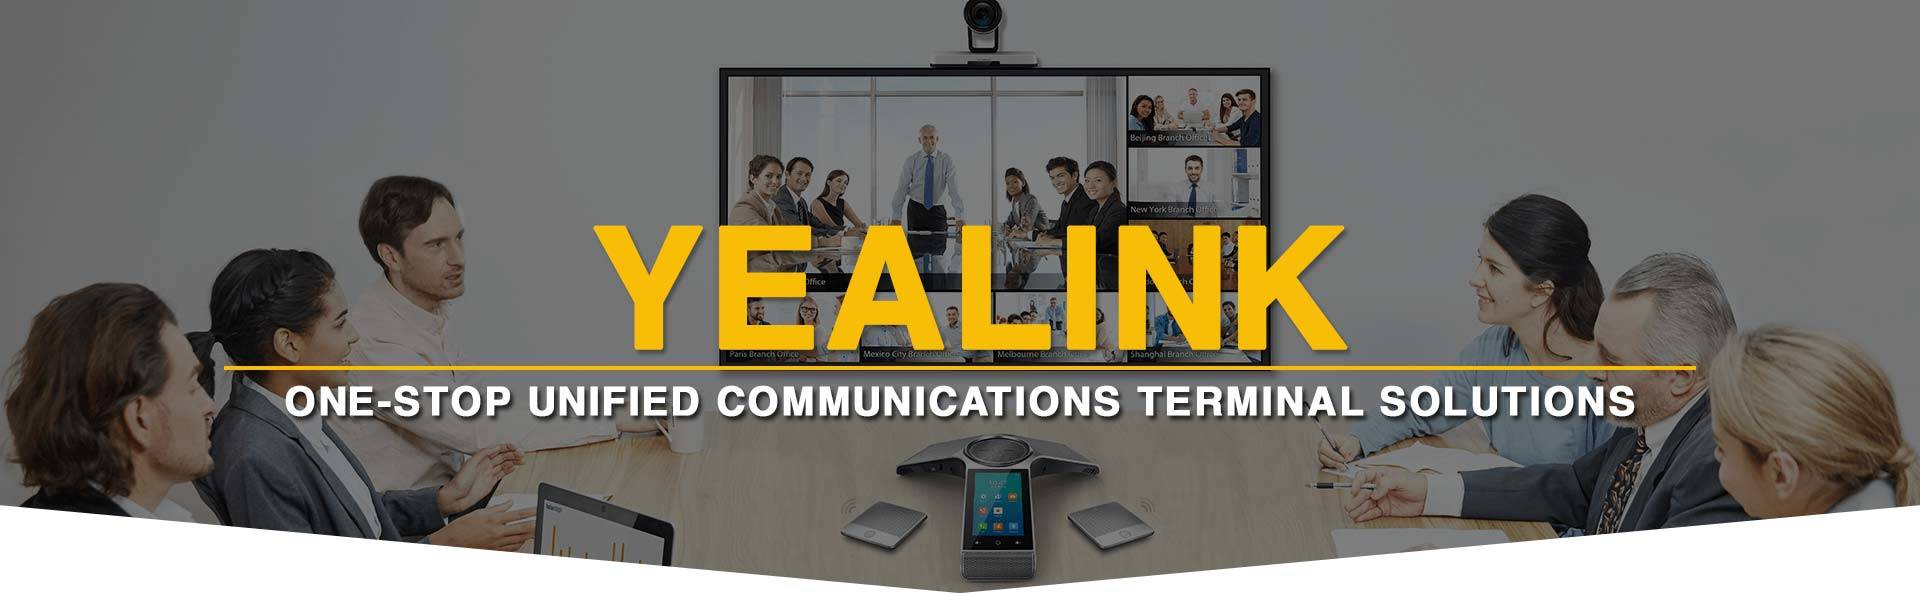 Yealink | Dimension Systems Inc